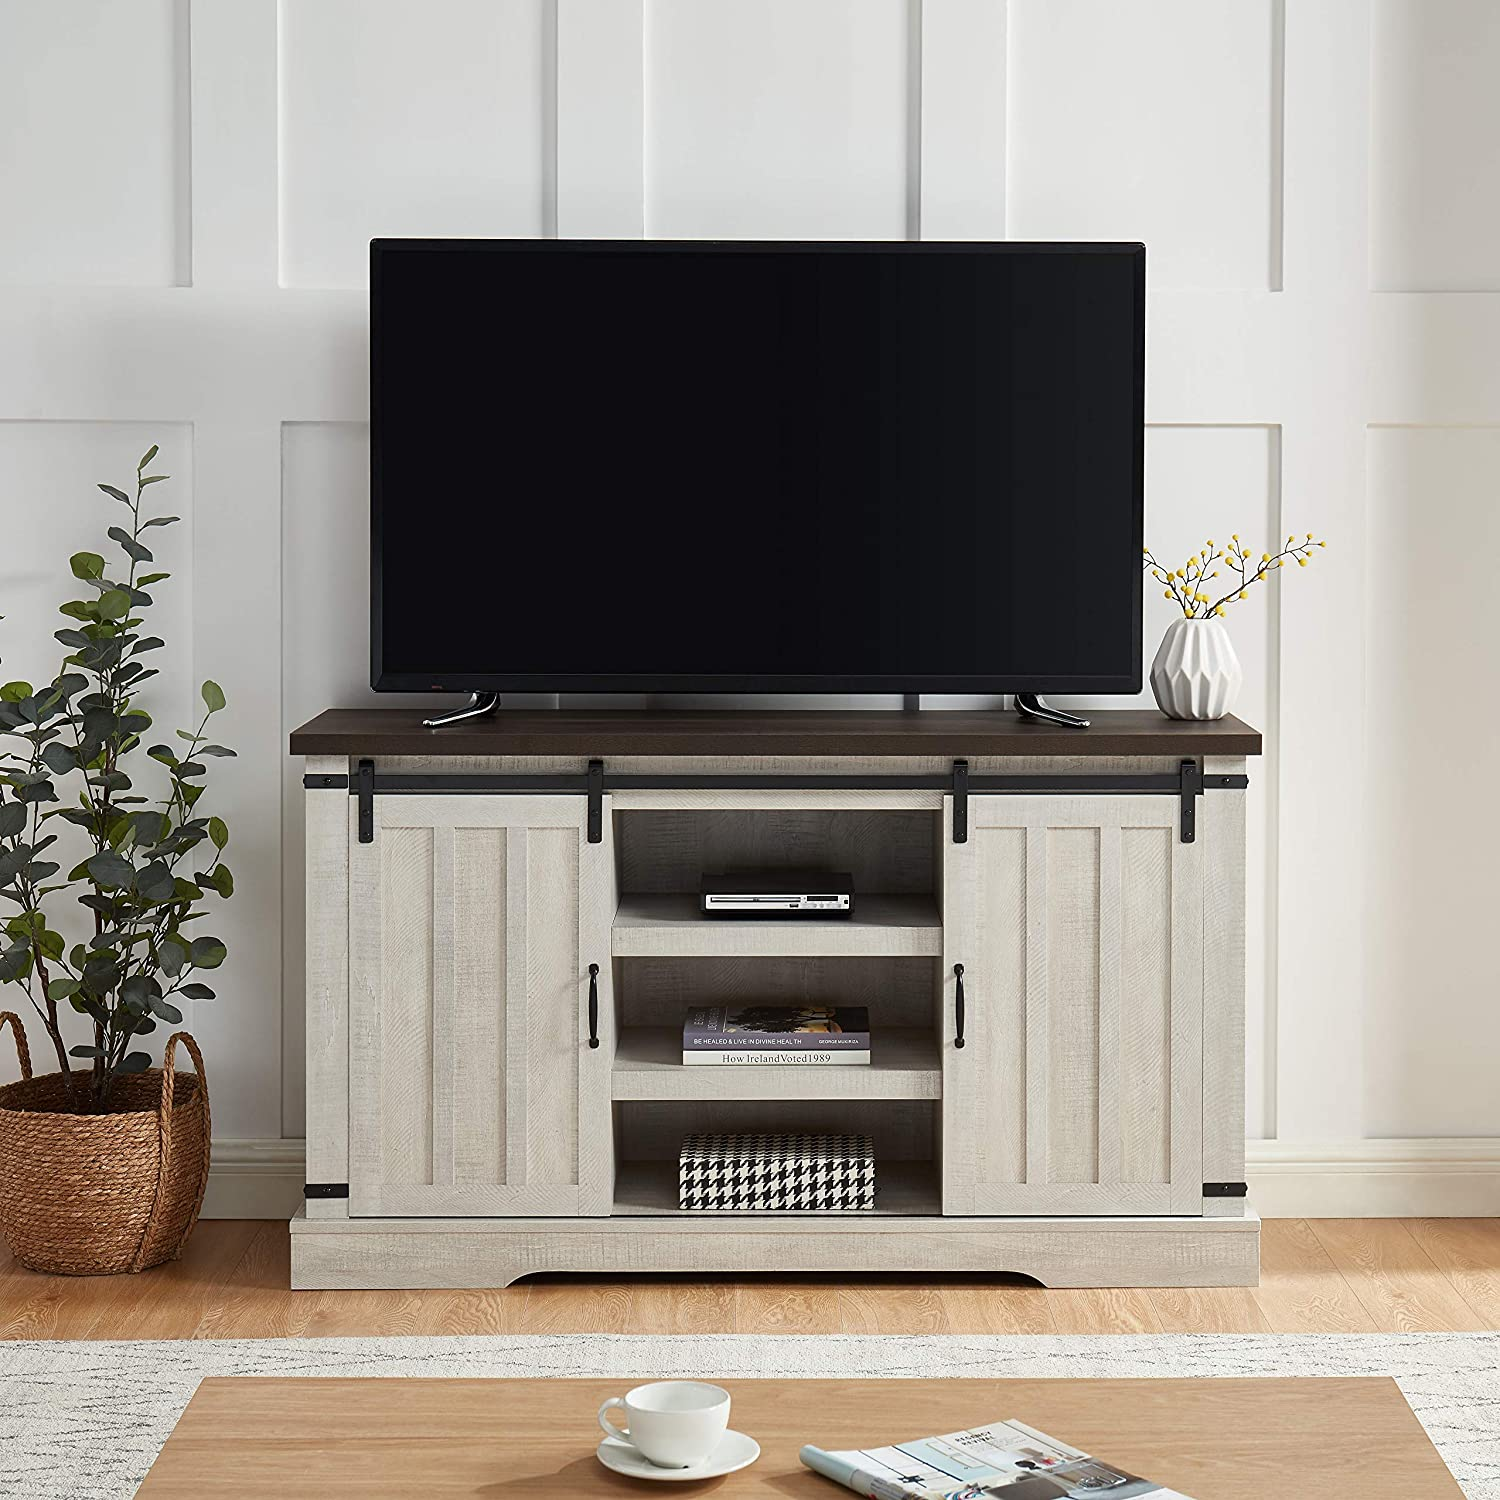 EDYO LIVING Farmhouse Sliding Barn Door TV Stand for TV up to 65 Inch Flat Screen Media Console Table Storage Cabinet Wood Entertainment Center Ranch Rustic Style (Off White)